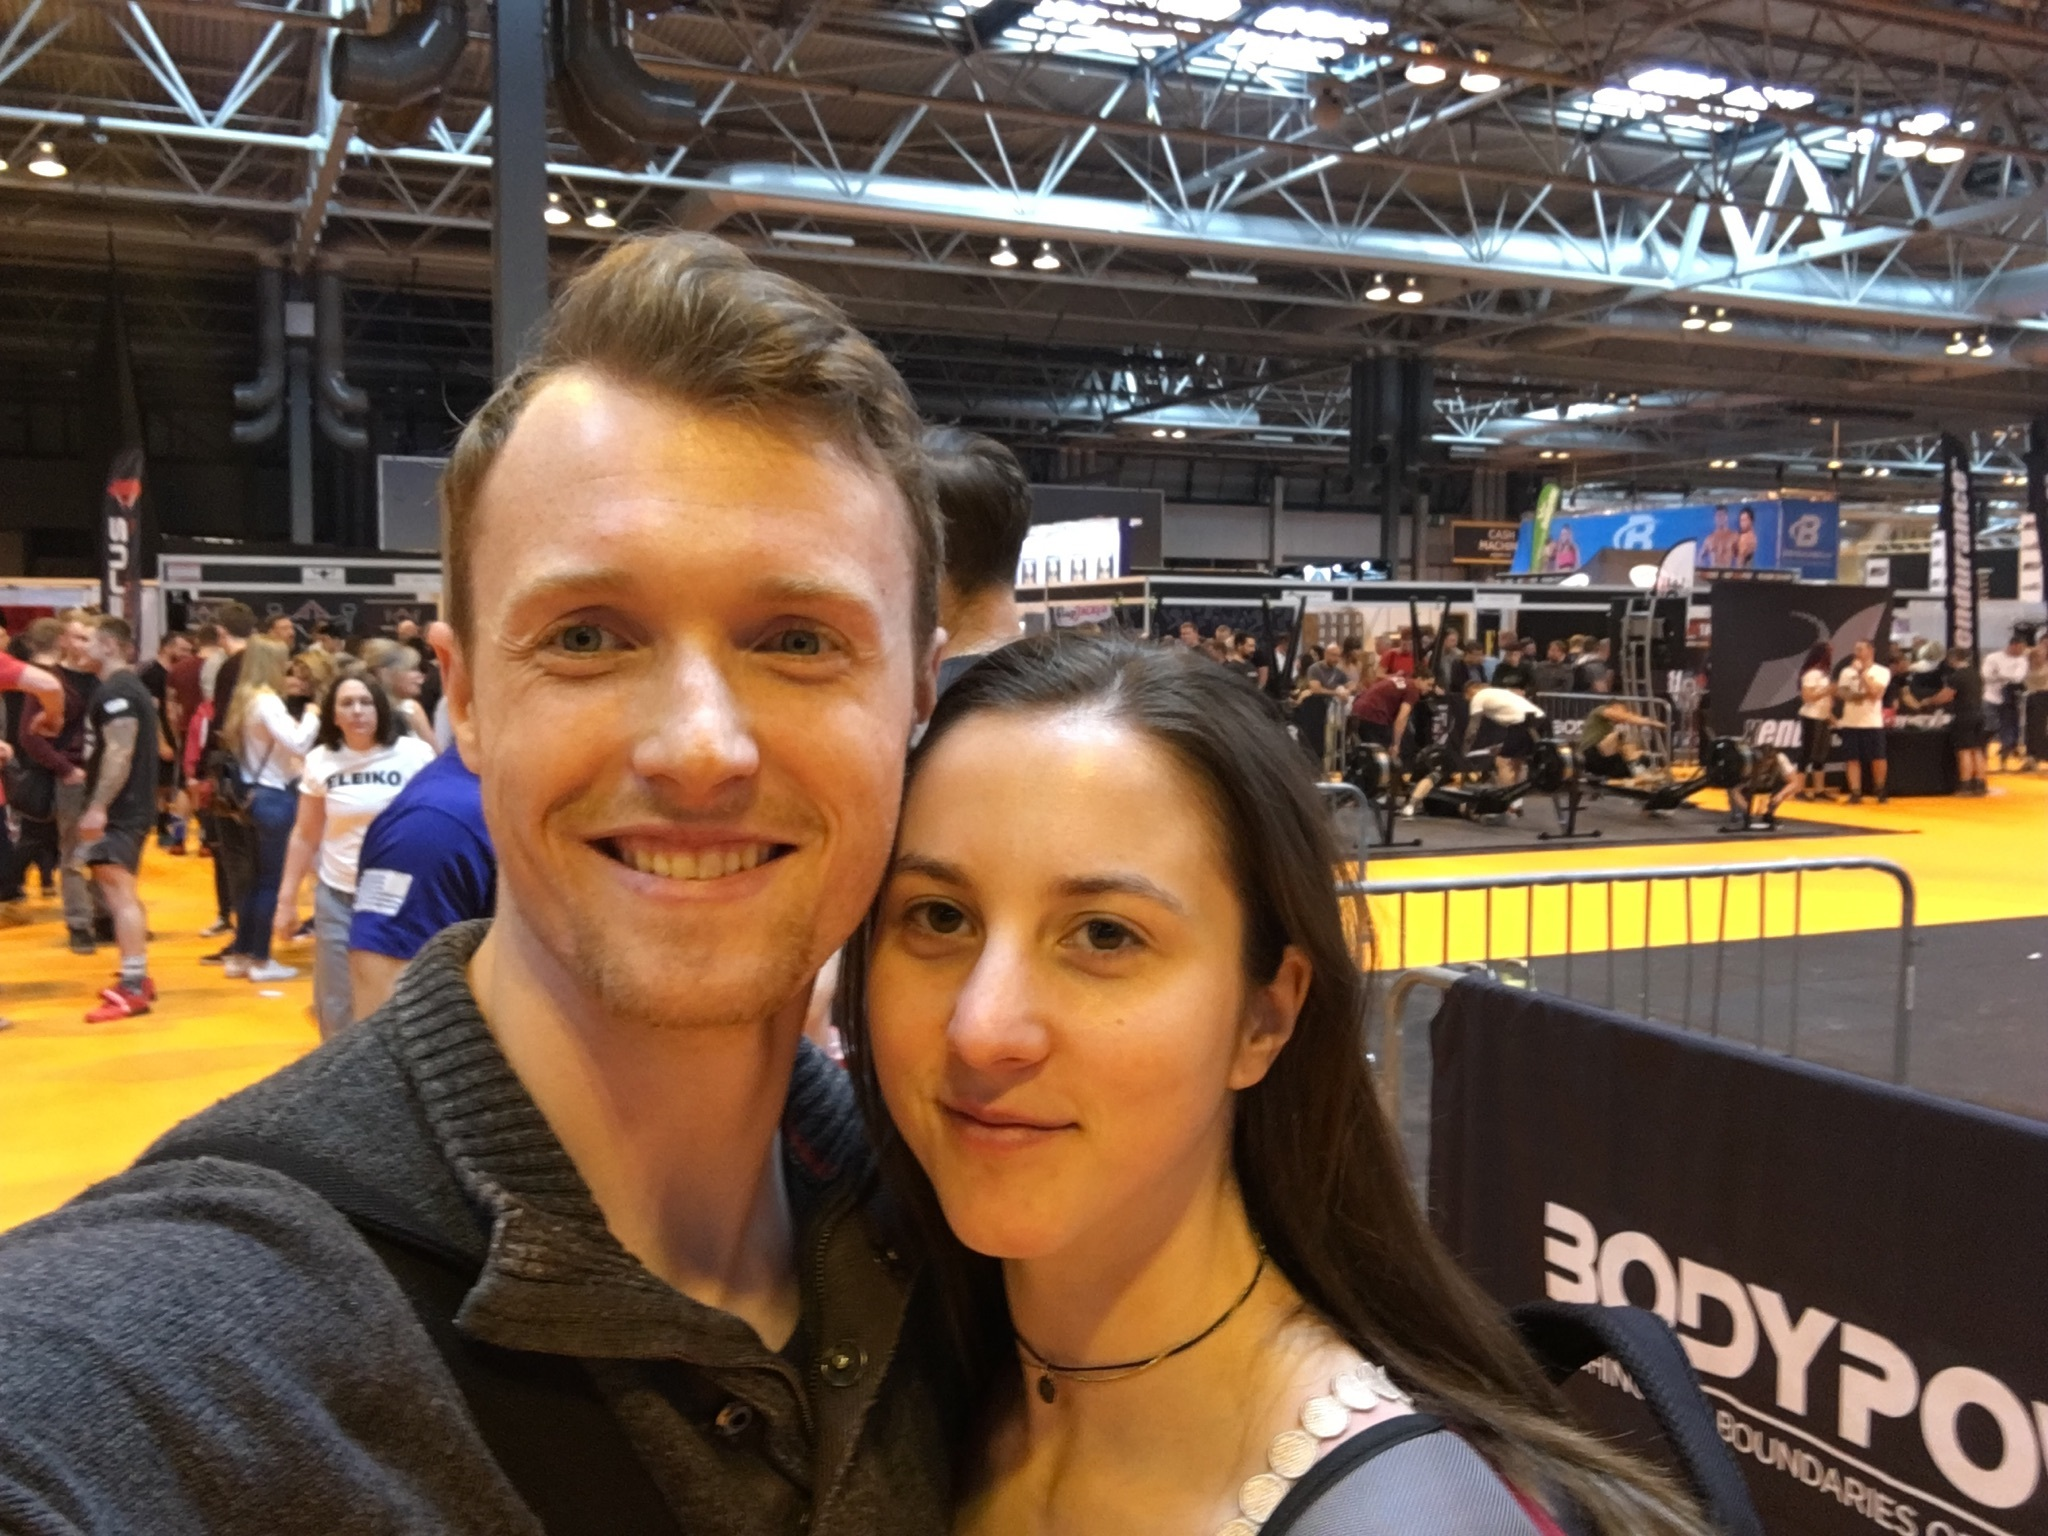 Iain and me at Bodypower 2017